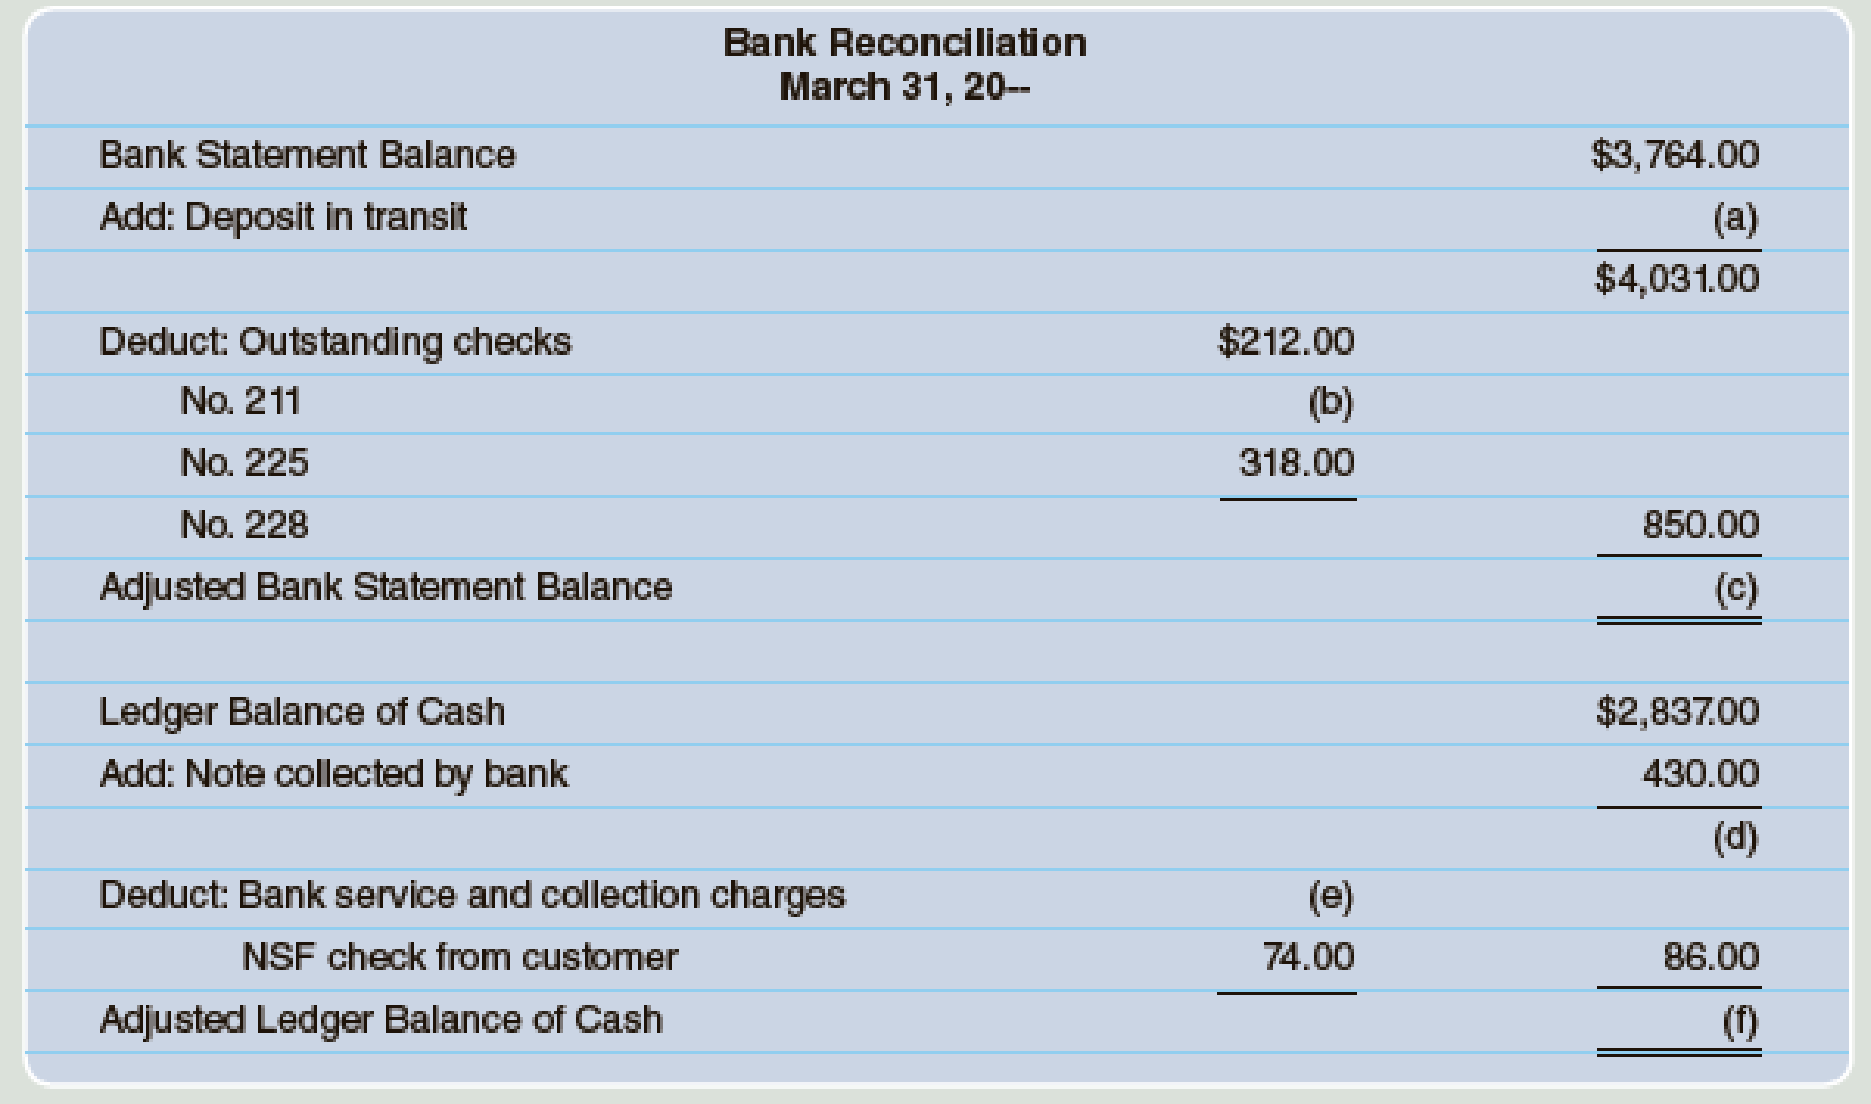 Fill In The Missing Amounts For The Following Bank